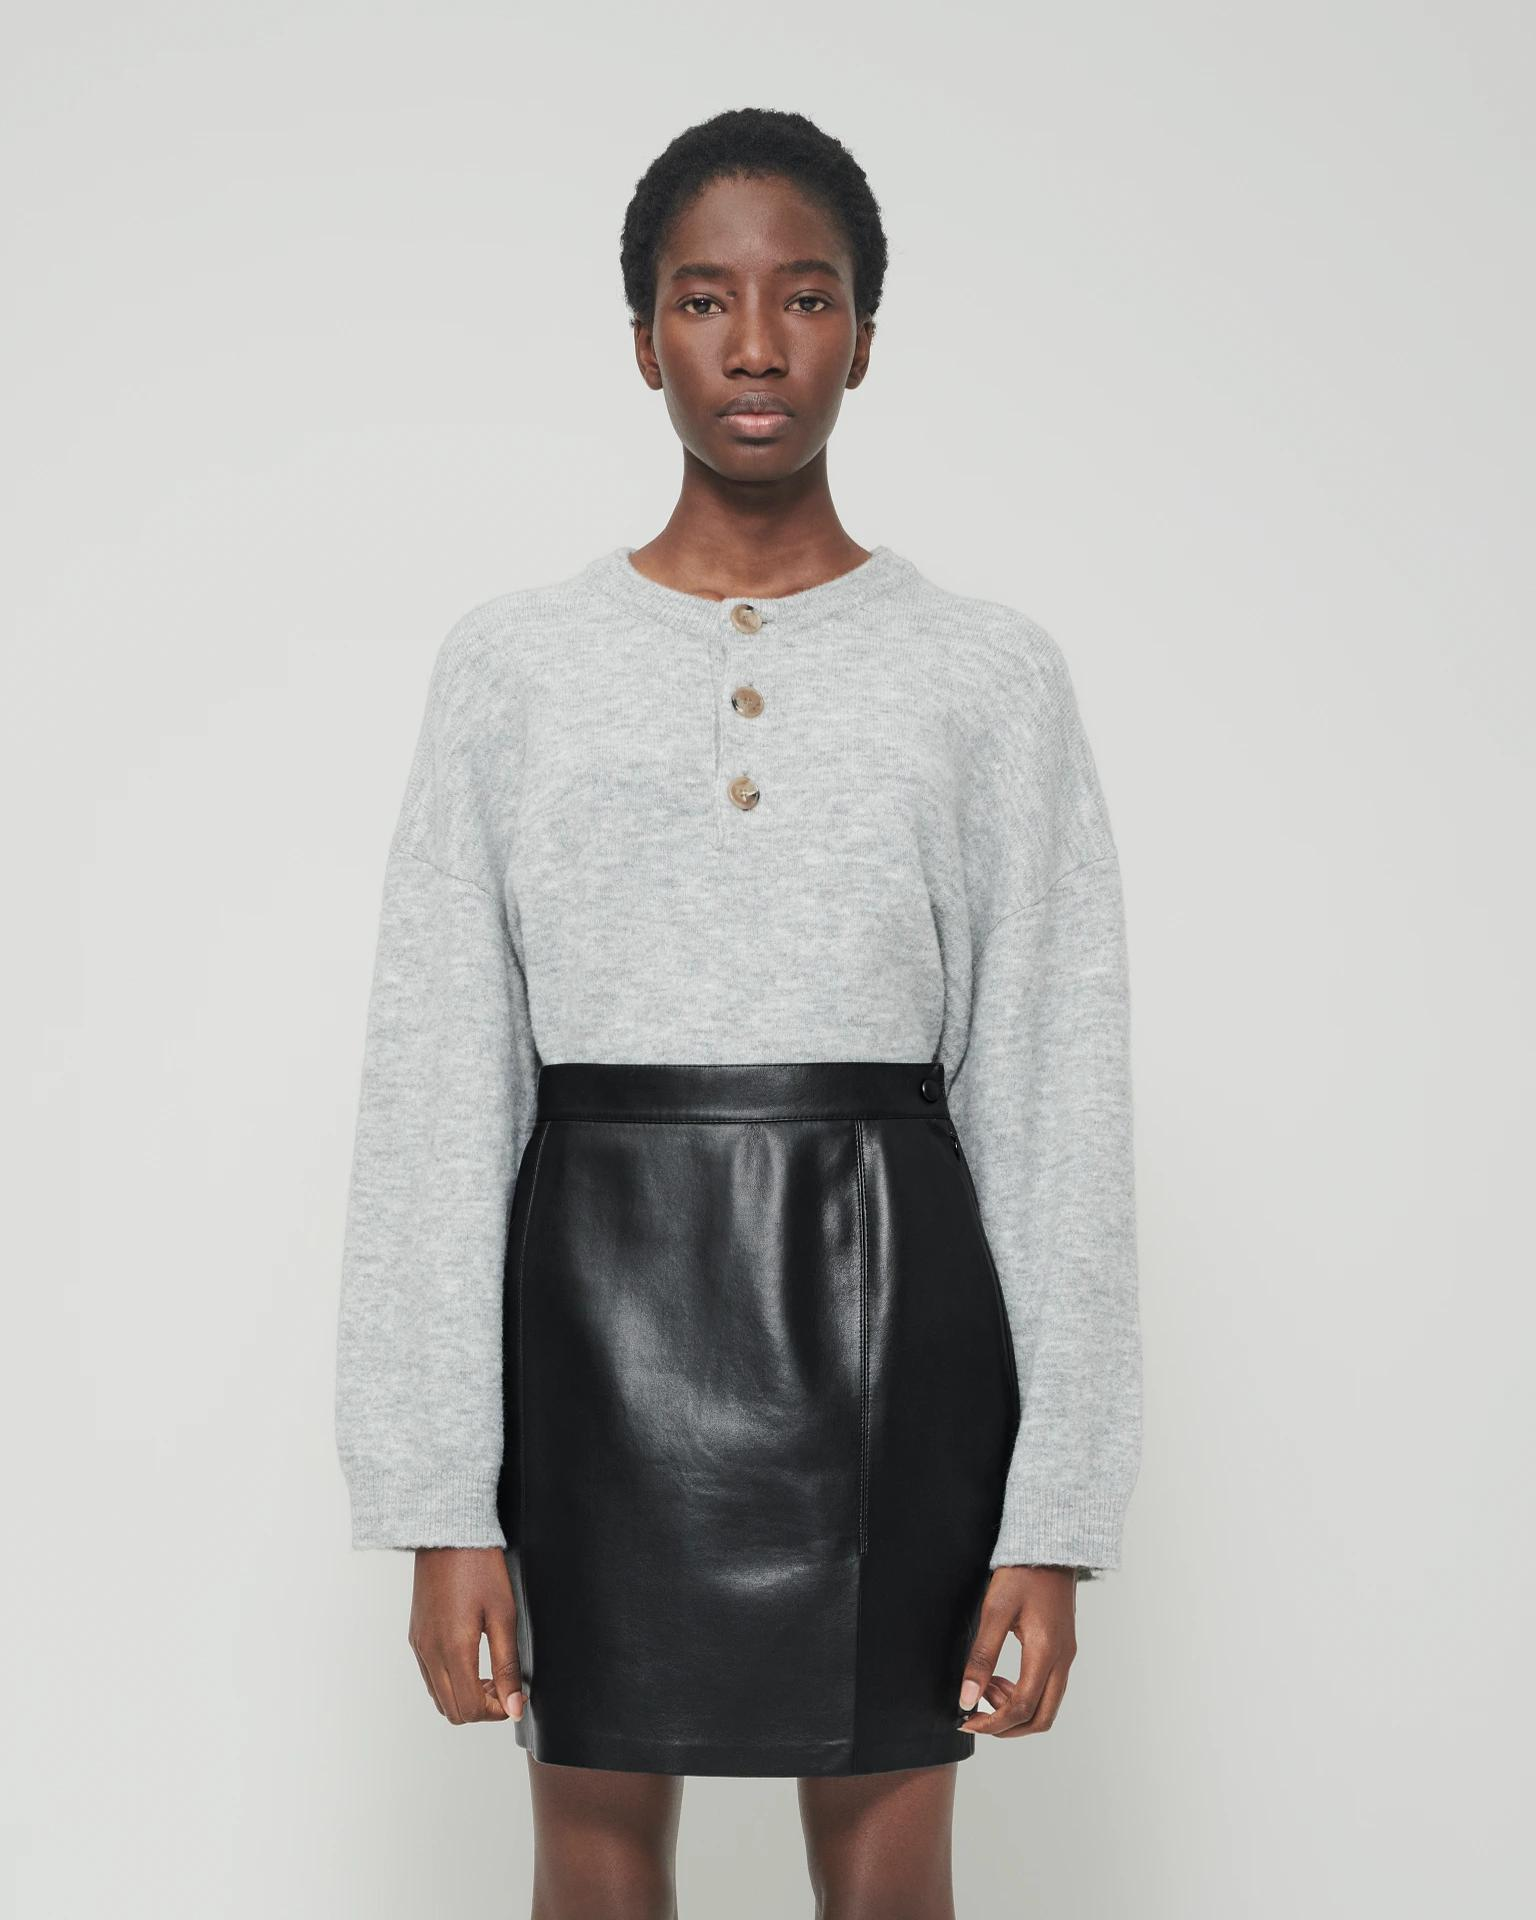 LAMEE - Fluffy-knit sweater - Heather gray